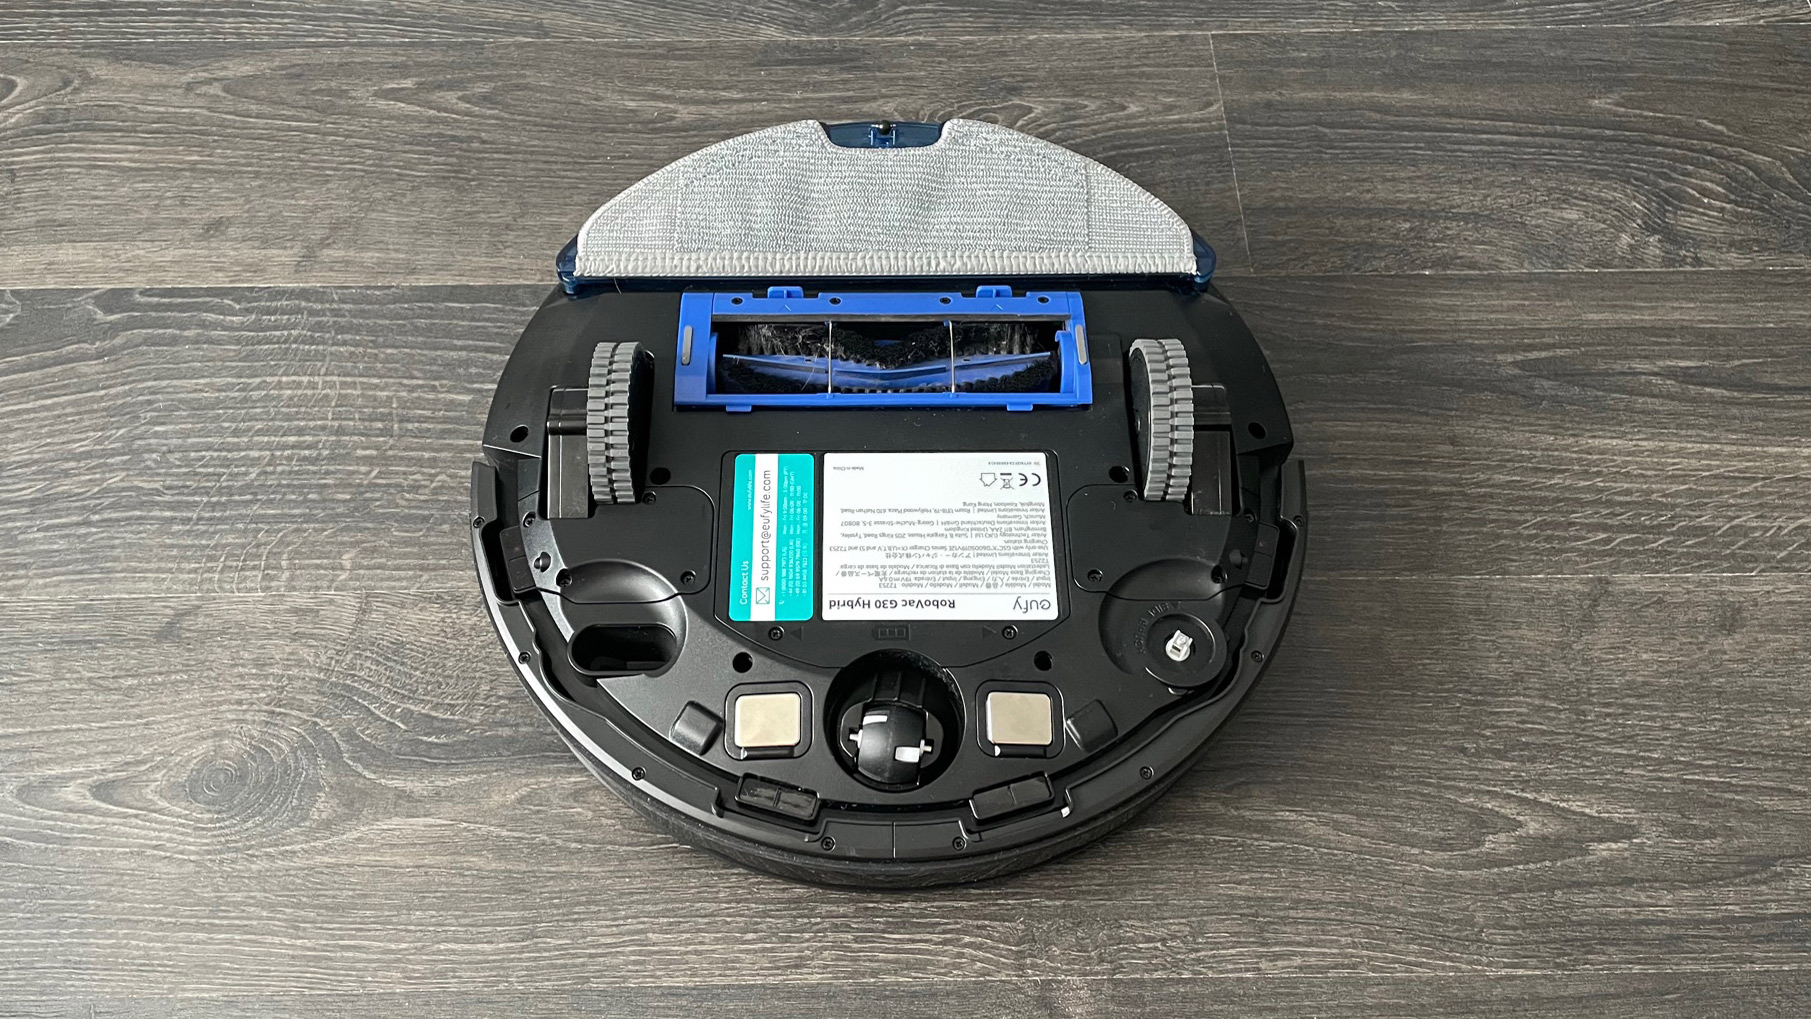 Eufy RoboVac G30 Hybrid upside down with the mopping pad attached on a wooden floor